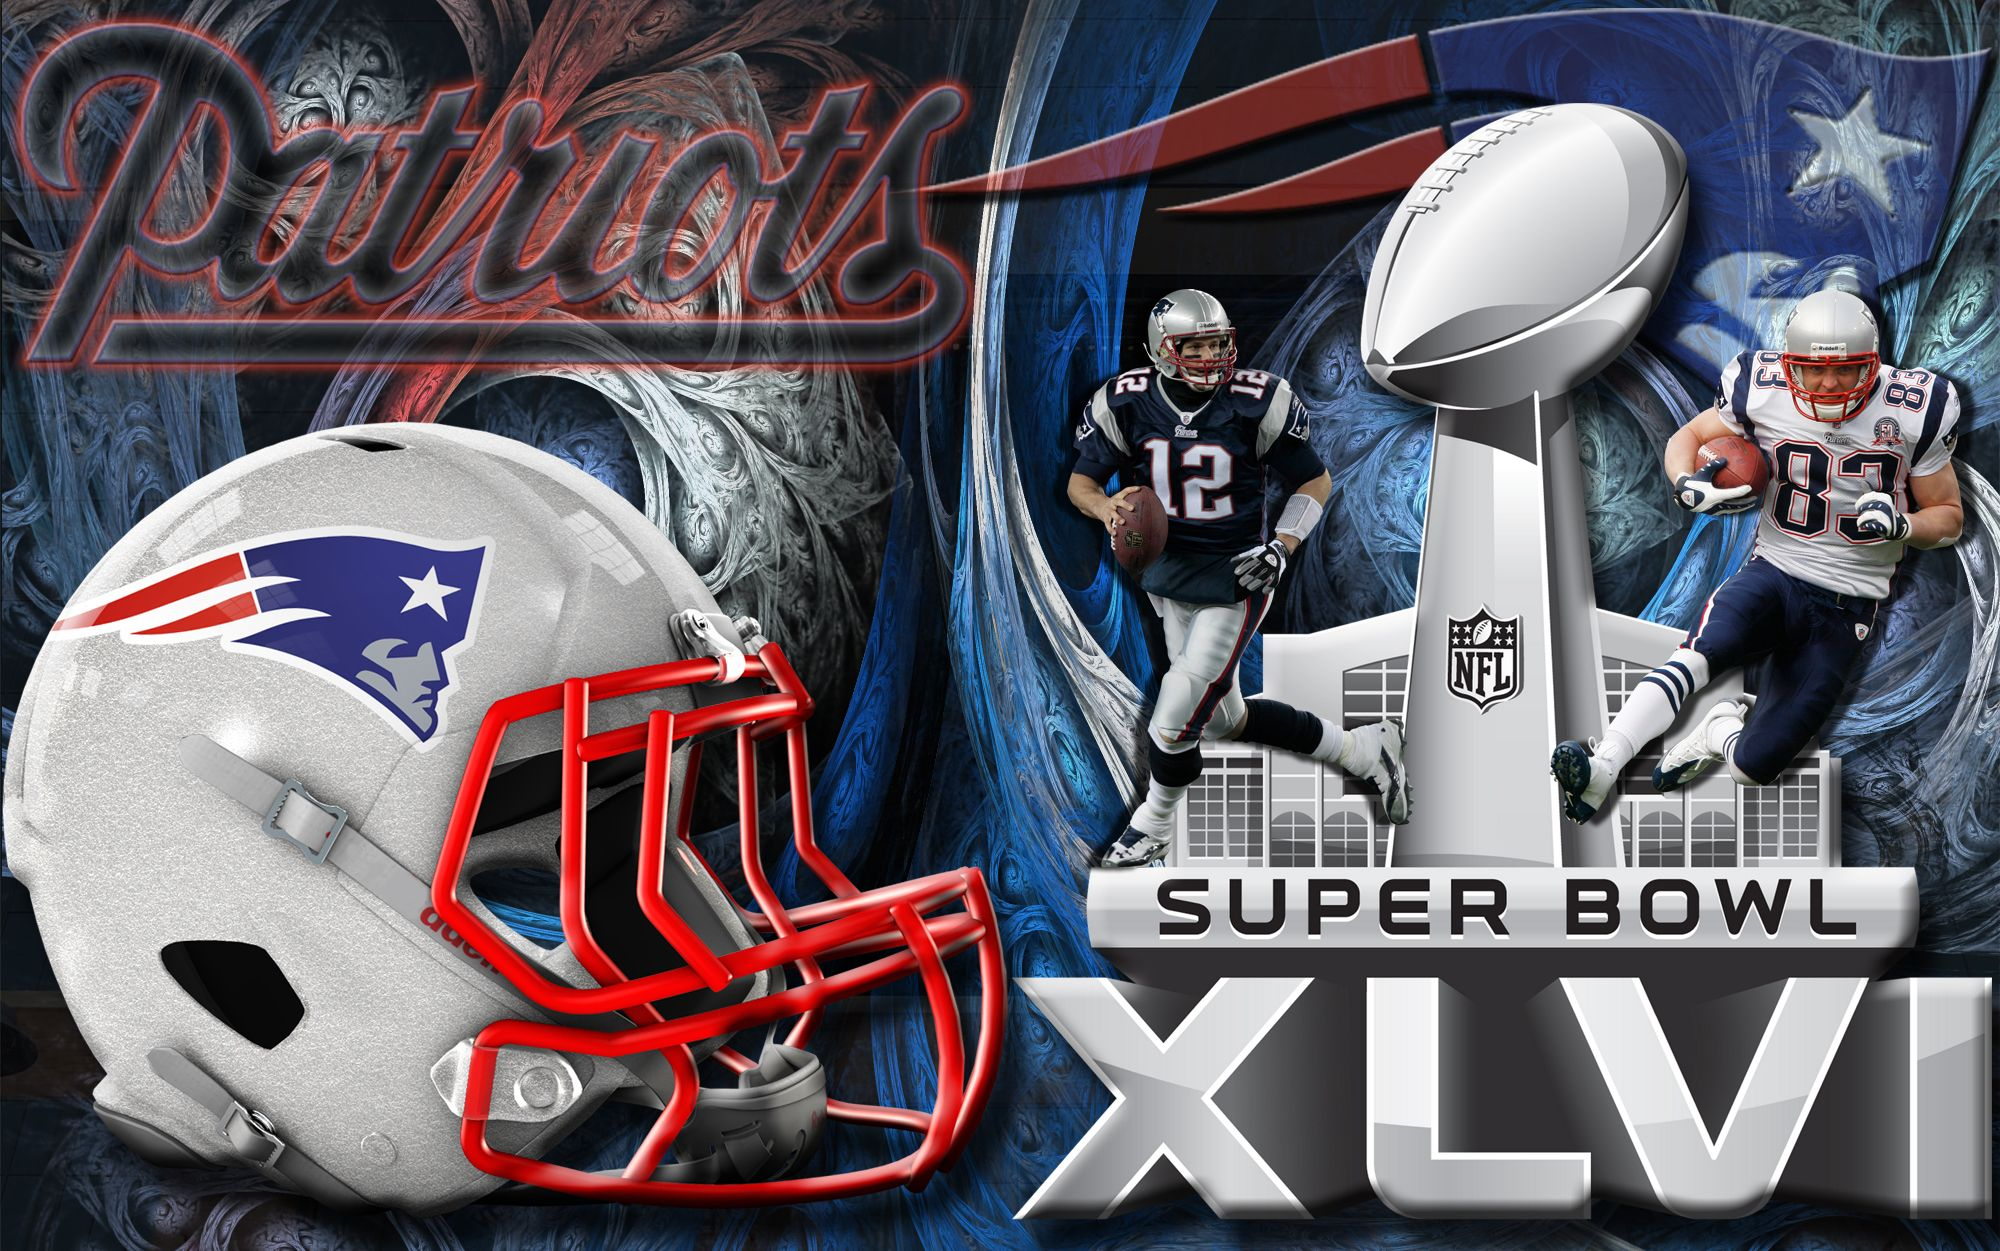 """2000x1251 Wallpapers By Wicked Shadows: New England Patriots Super Bowl Wallpaper"""">"""